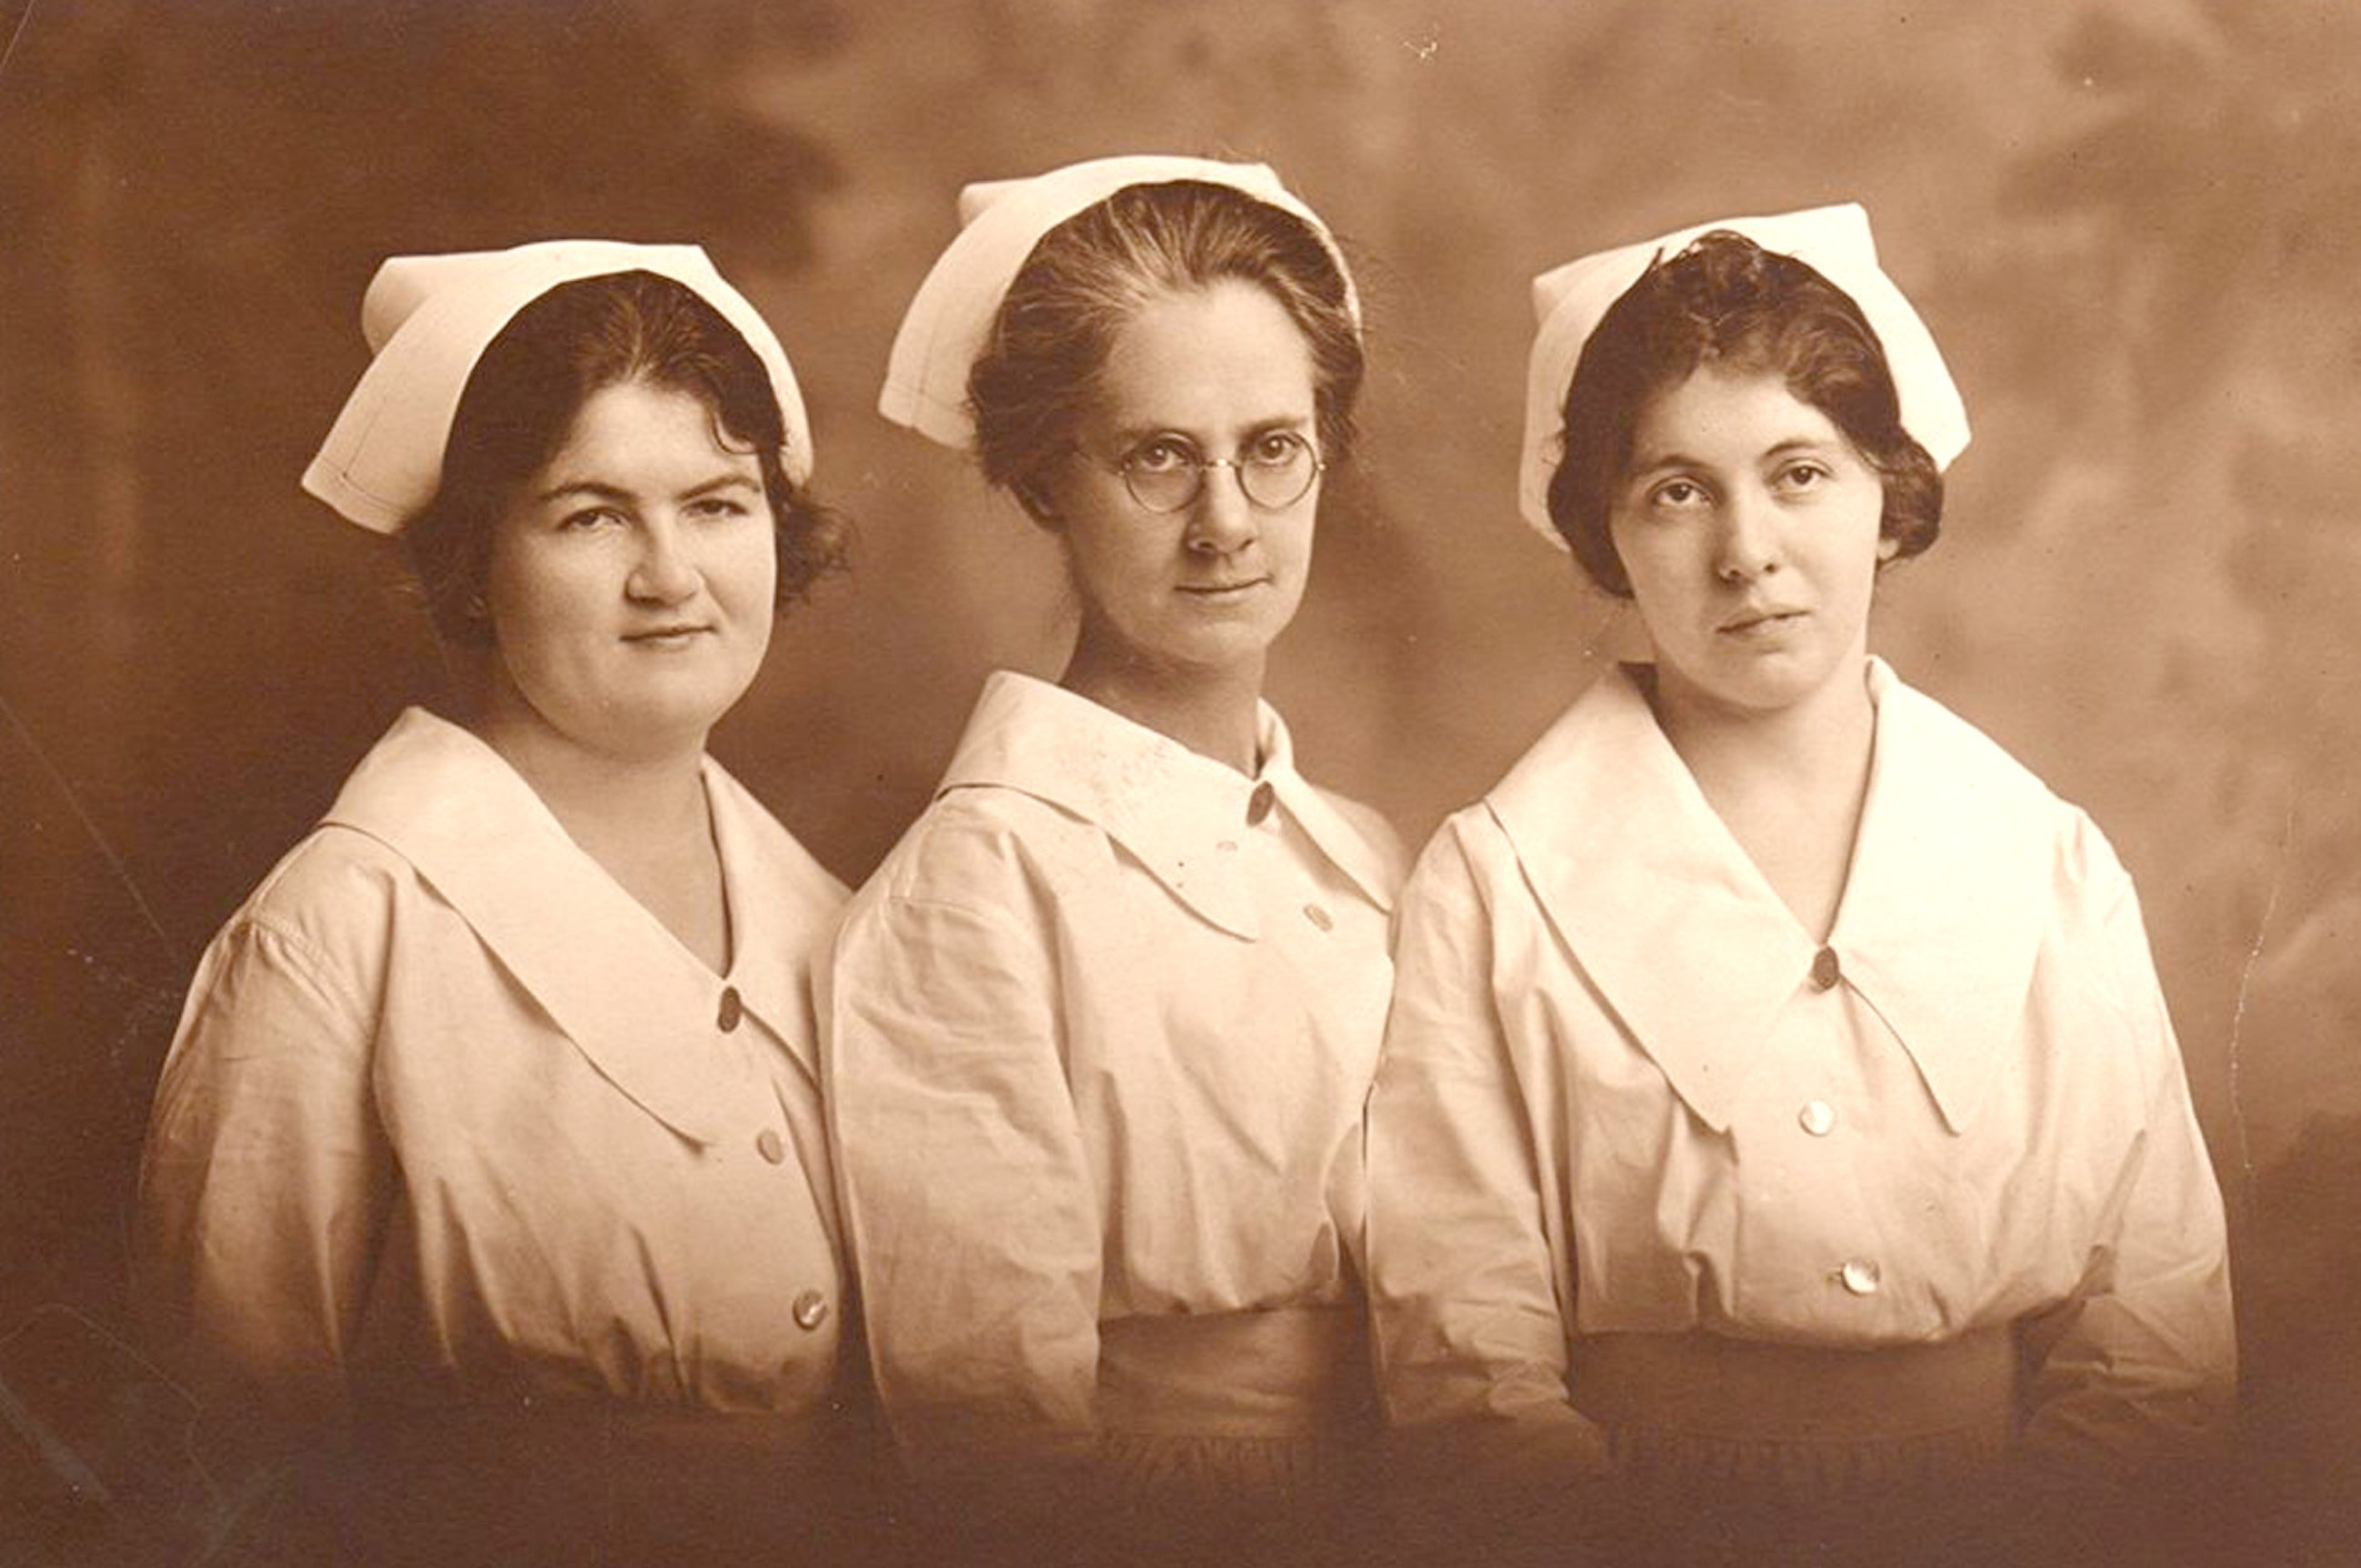 St. Joseph's Hospital nursing graduates from 1922 include, from left, Bernadette Scully, Anna Riley and Gladys Gordy.